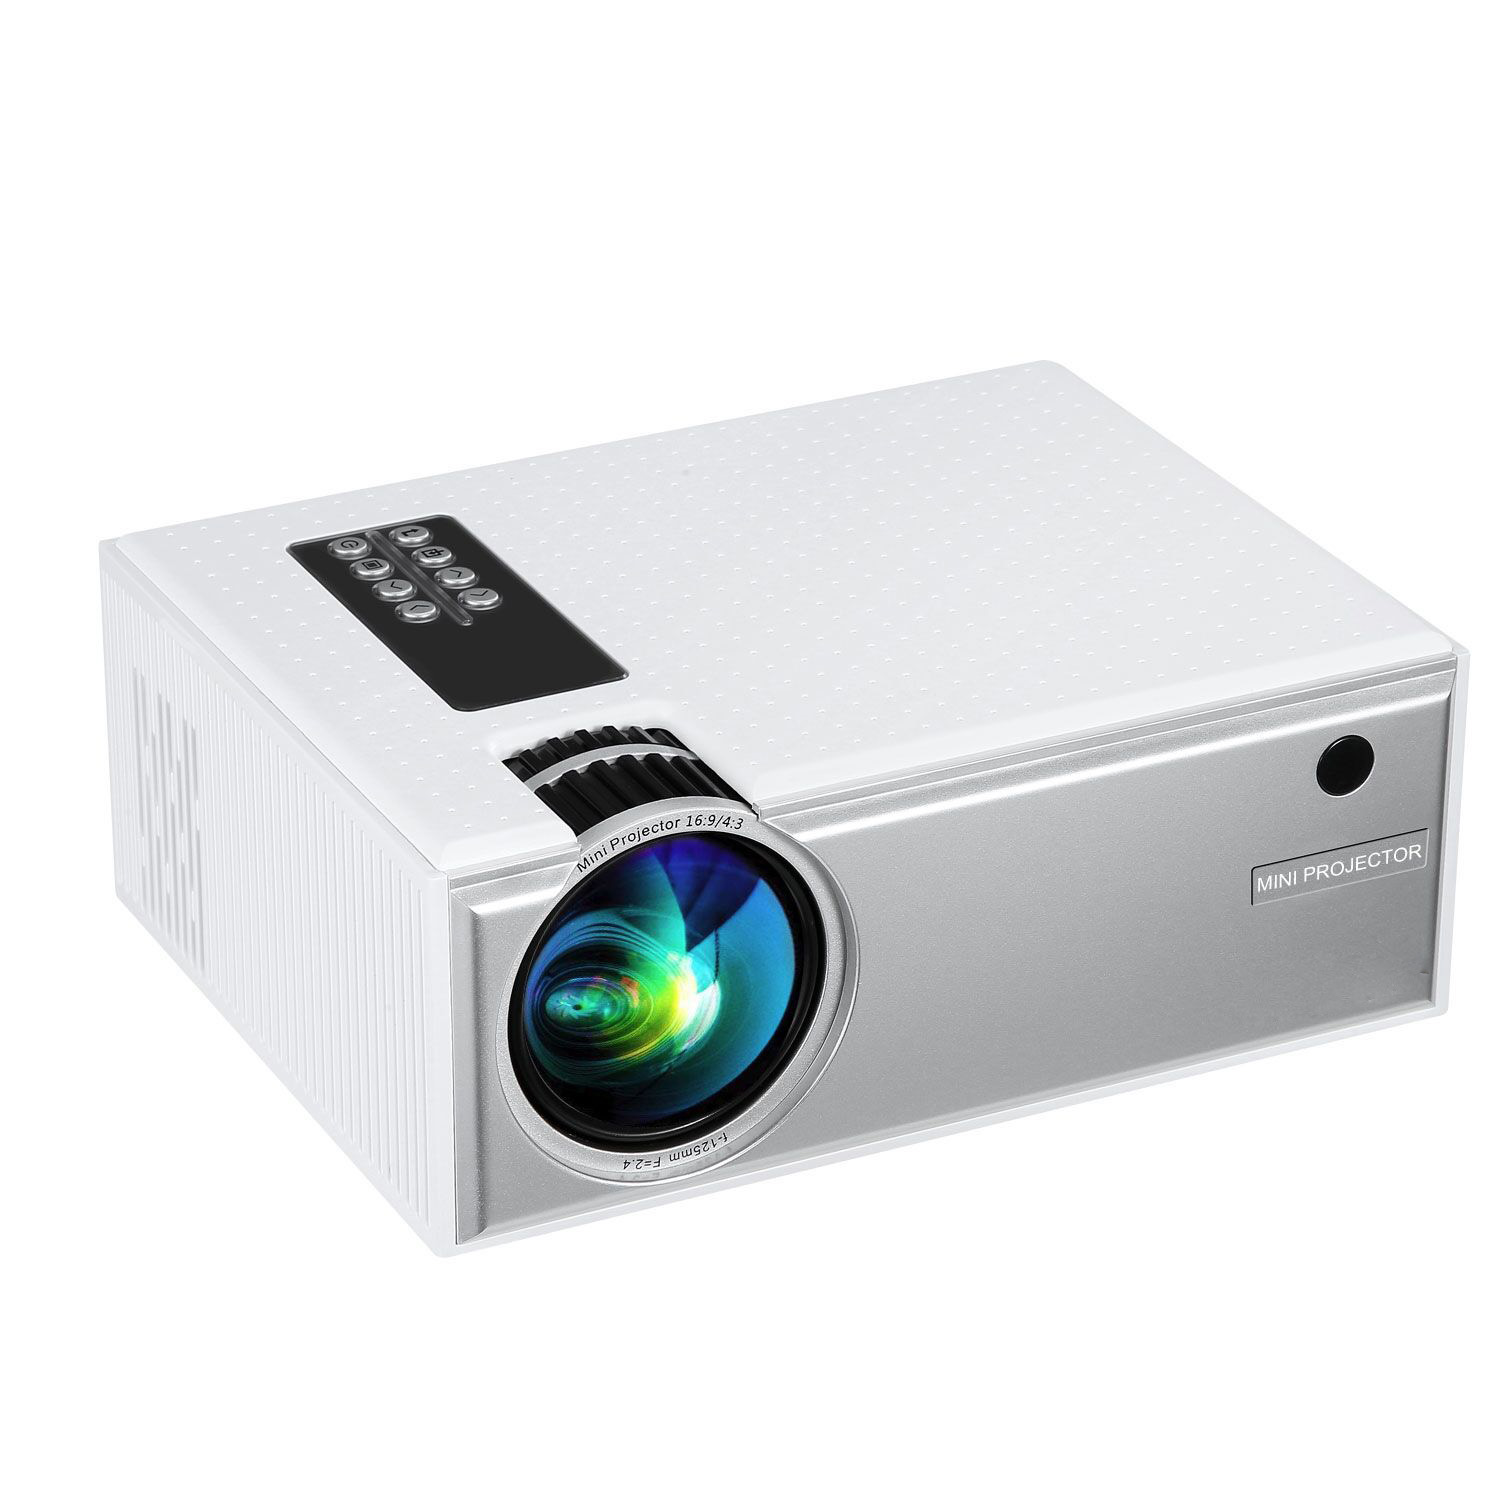 CLAITE C8 LCD Projector Support 1080P 1800 Lumens 1280 x 800 Pixels Home Theater Projector WhiteCLAITE C8 LCD Projector Support 1080P 1800 Lumens 1280 x 800 Pixels Home Theater Projector White